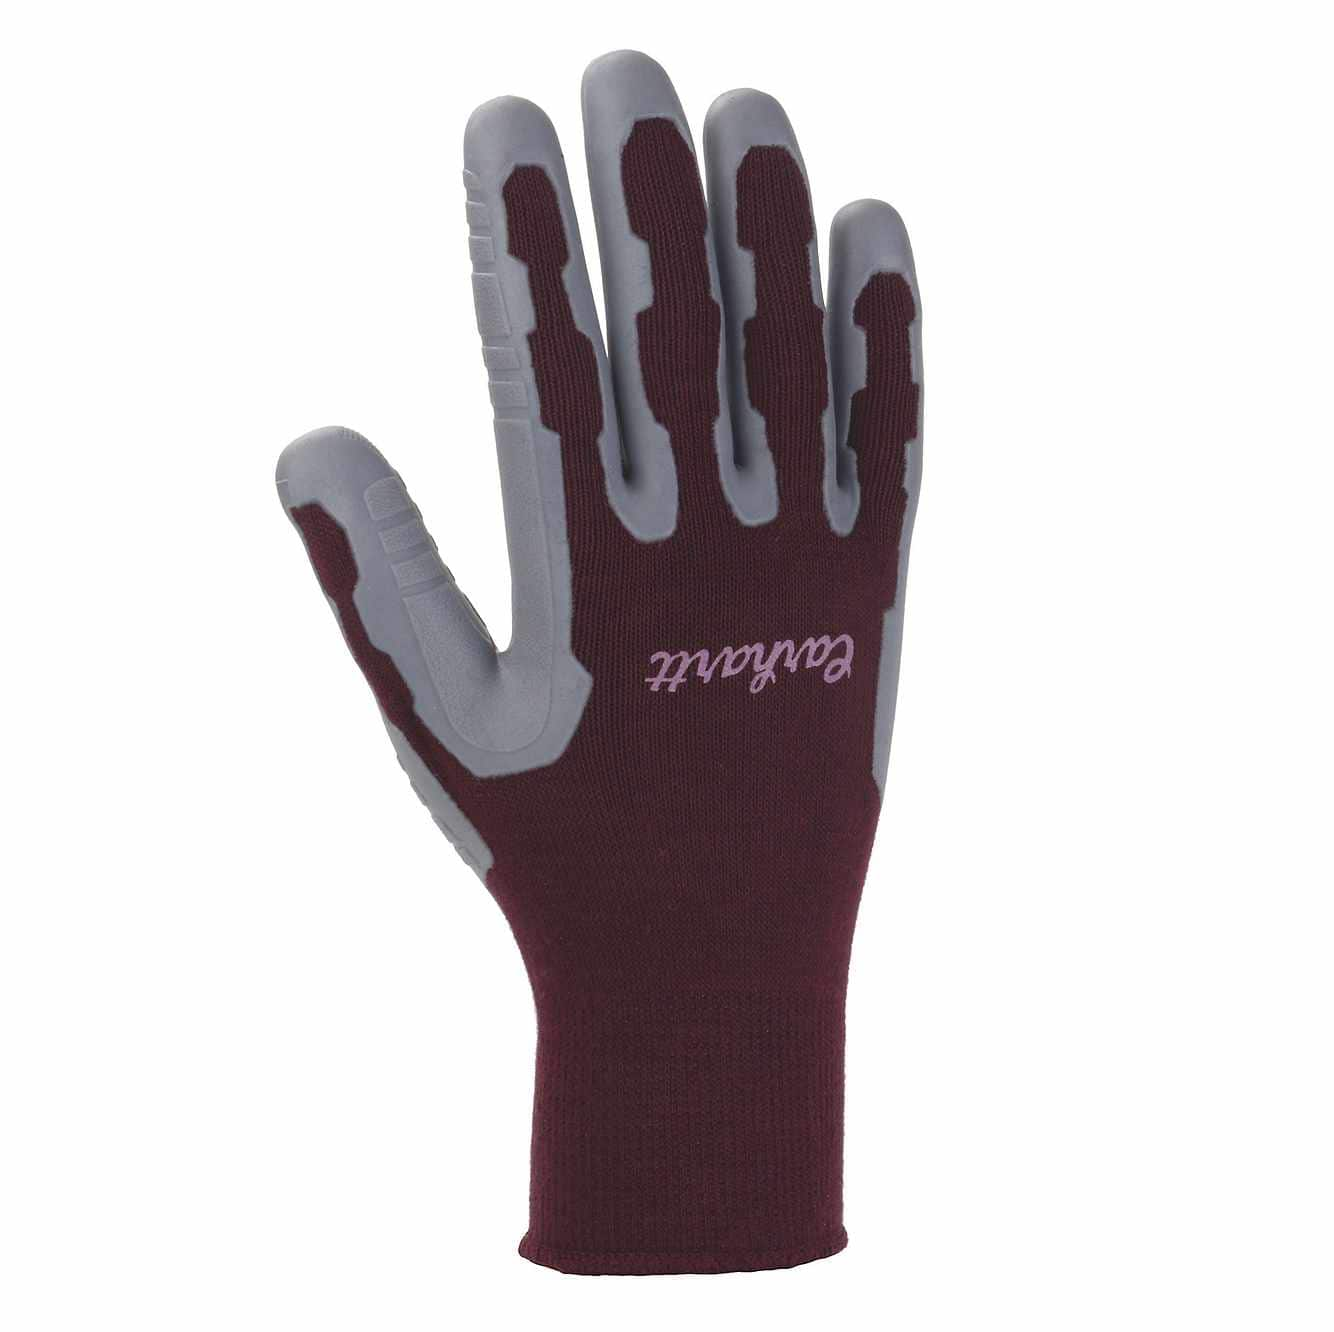 Picture of Women's C-Grip Pro Palm Glove in Dusty Plum